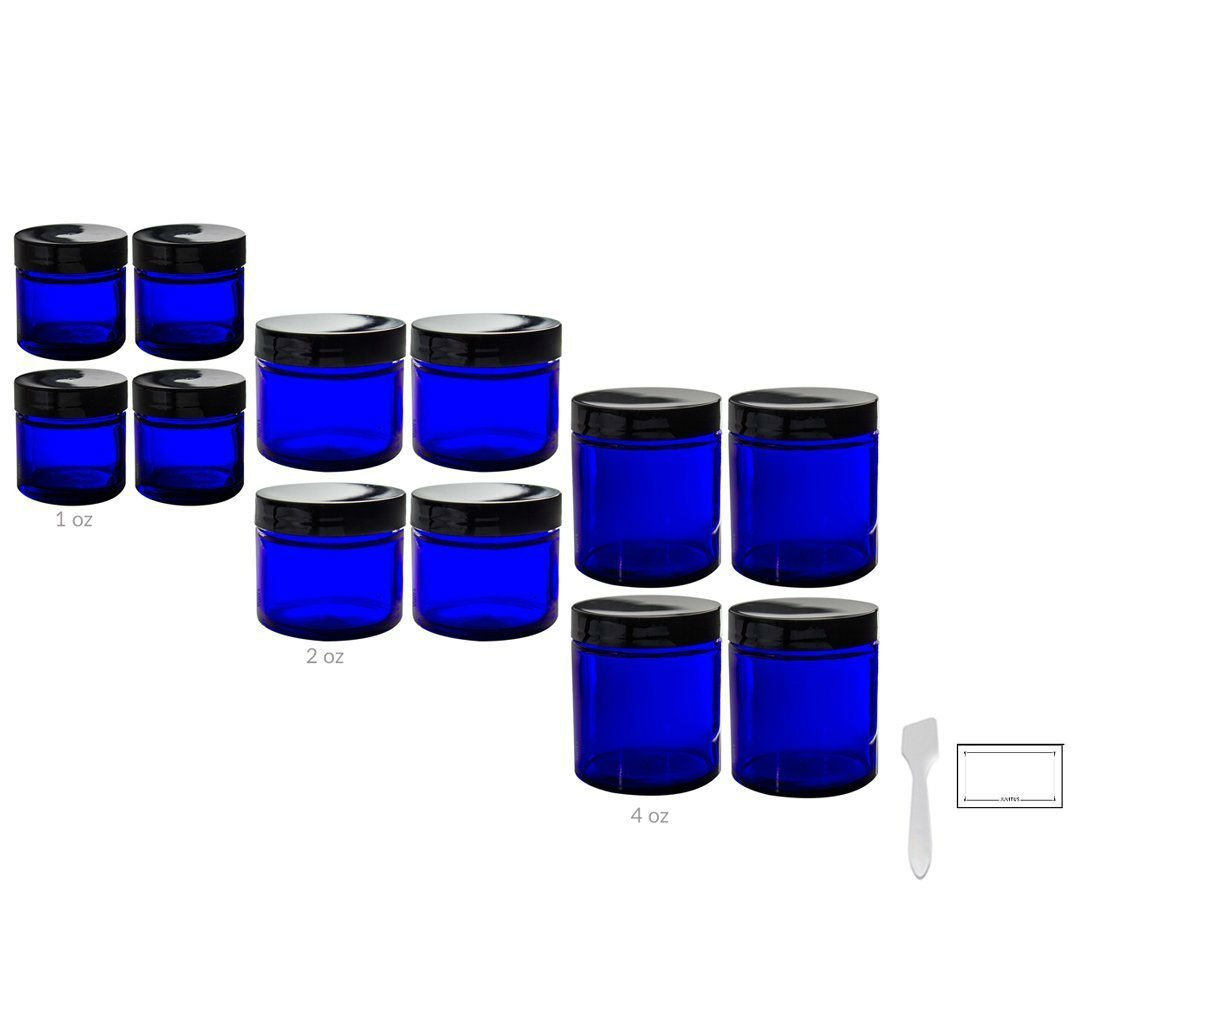 12 piece Cobalt Blue Glass Straight Sided Jar Starter Kit Set: Includes 4 -1 oz Cobalt Glass Jars, 4 -2 oz Cobalt Glass Jars, 4 -4 oz Cobalt Glass Jars + Spatulas and Labels